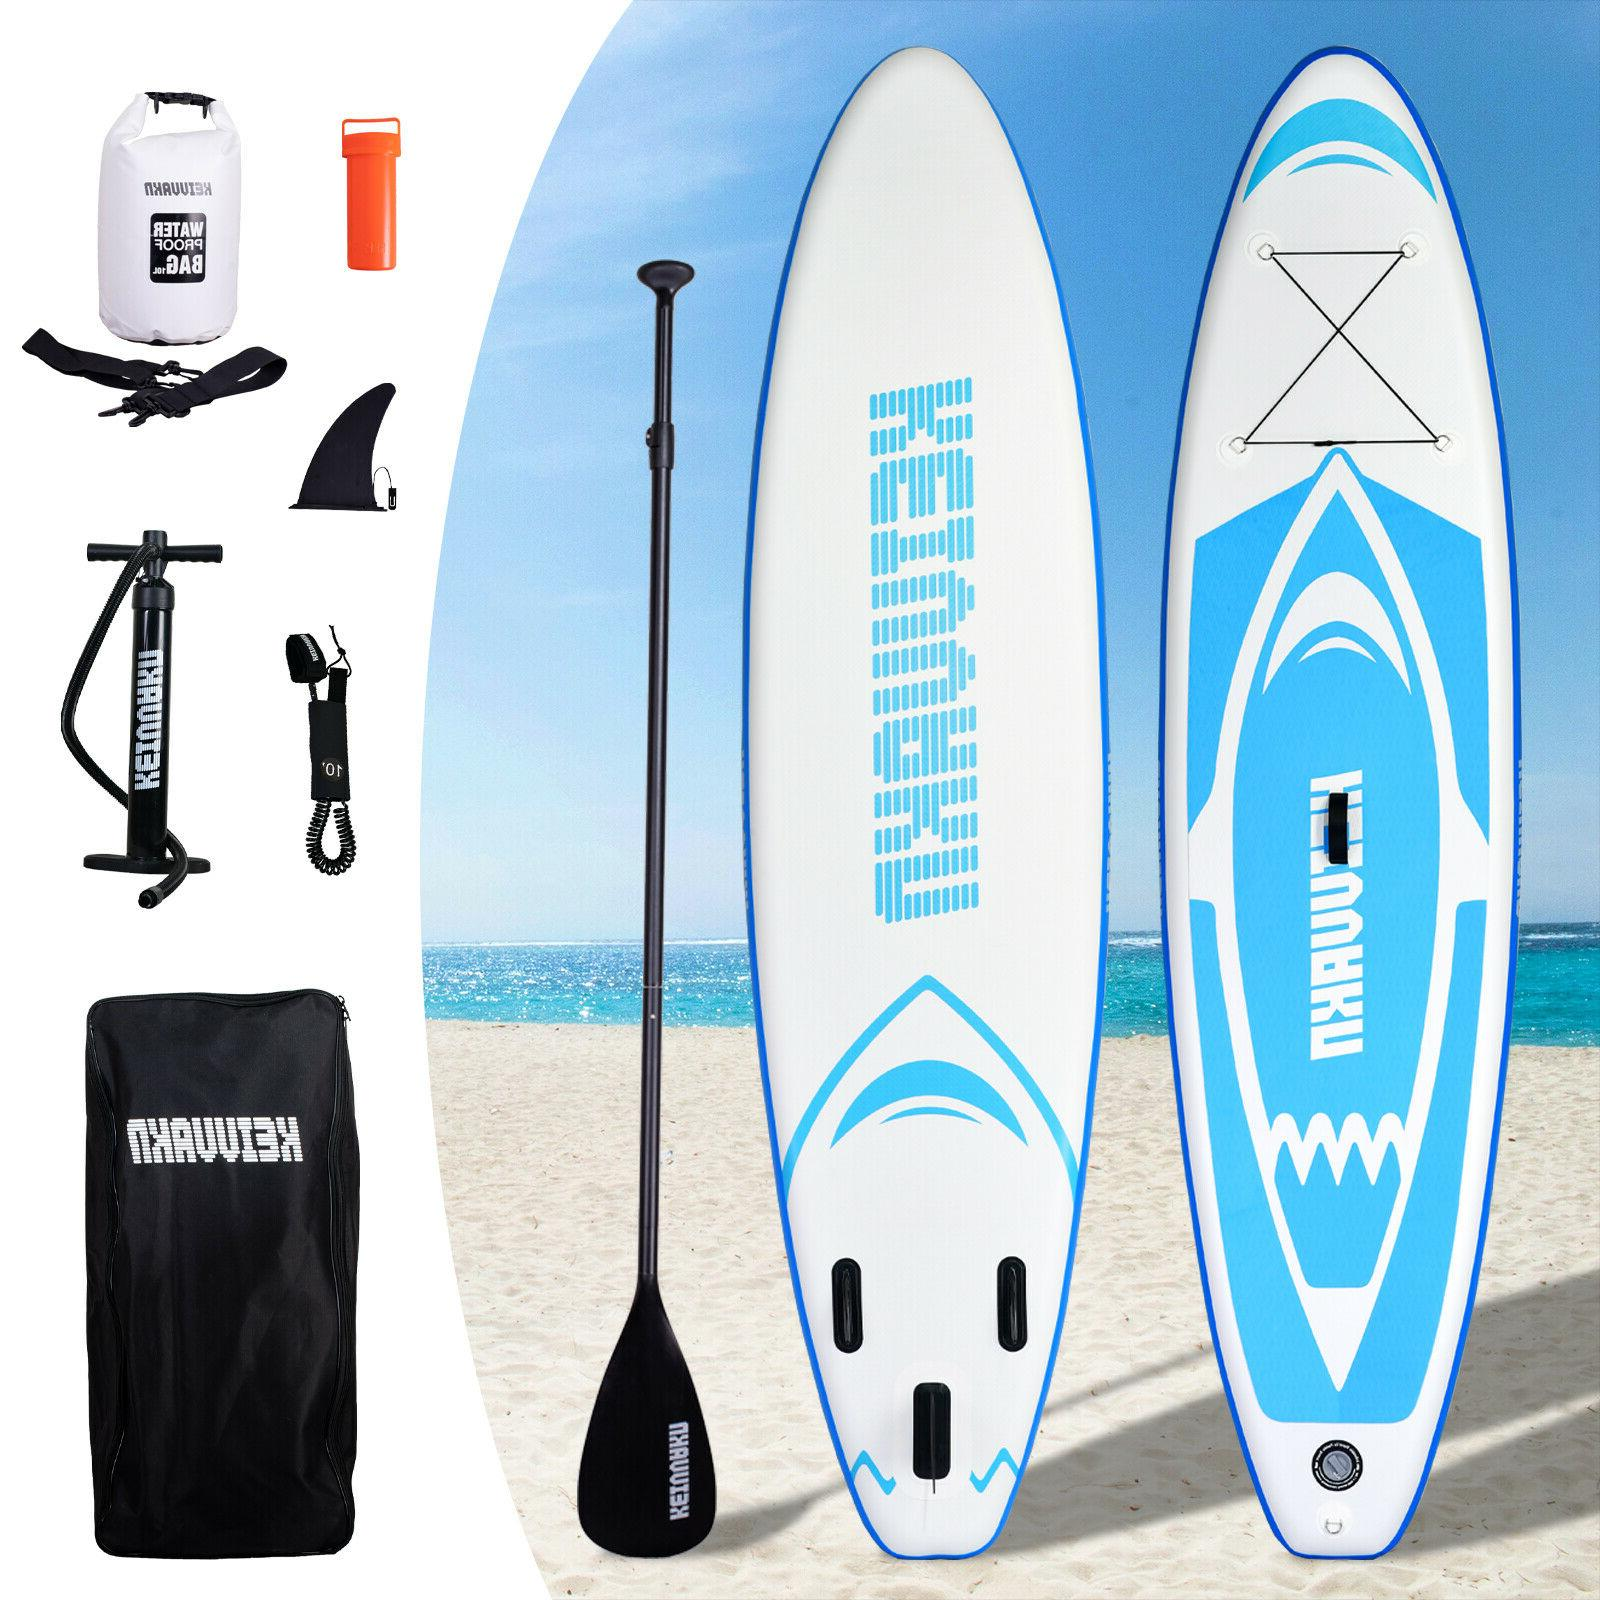 inflatable stand up paddle board 11x33 x6